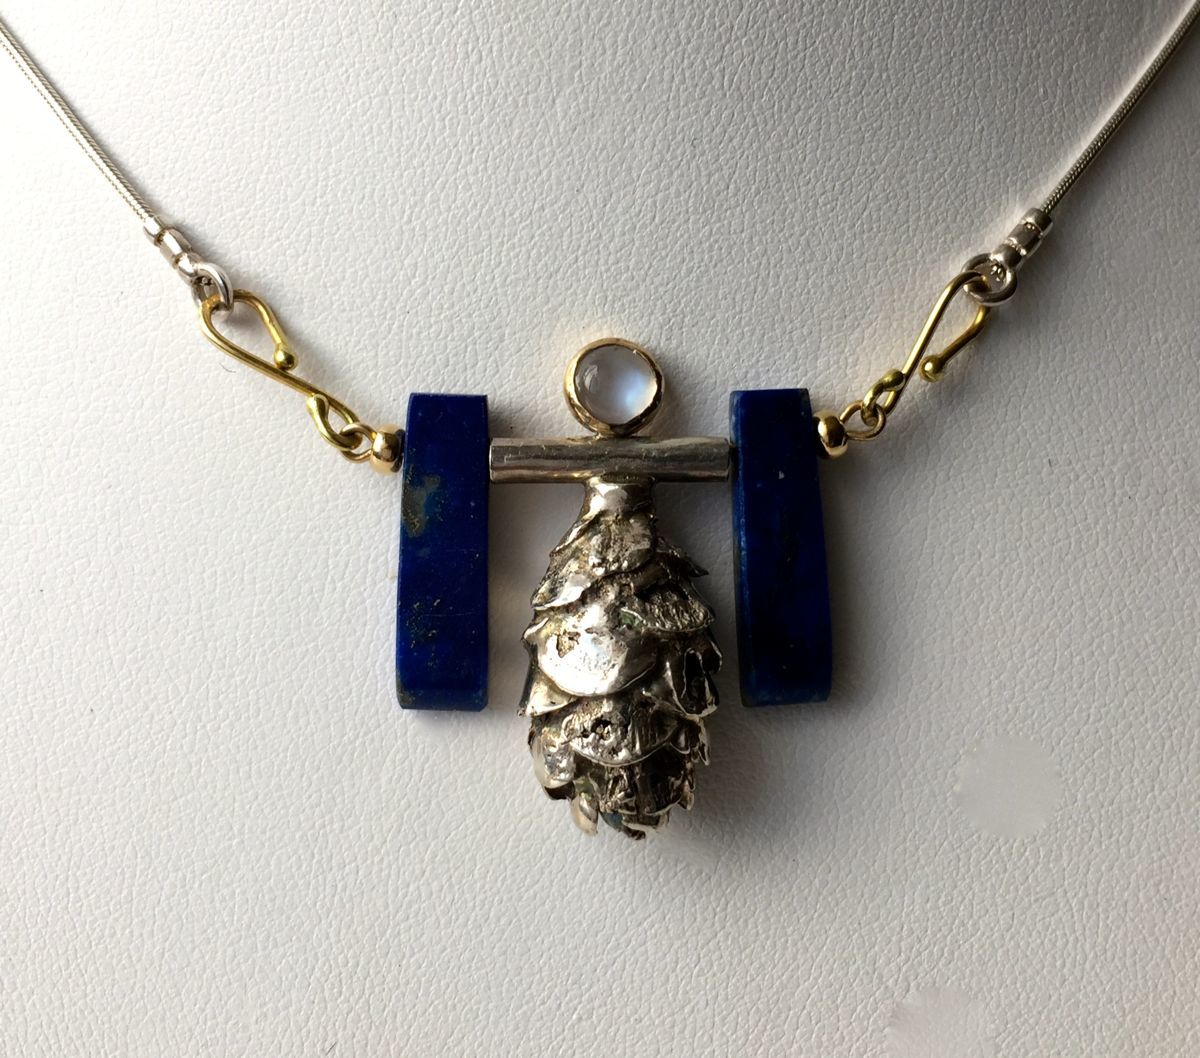 236- MN Lapis Lazuli, Silver Acorn, Moonstone, 18kt Gold (large view)